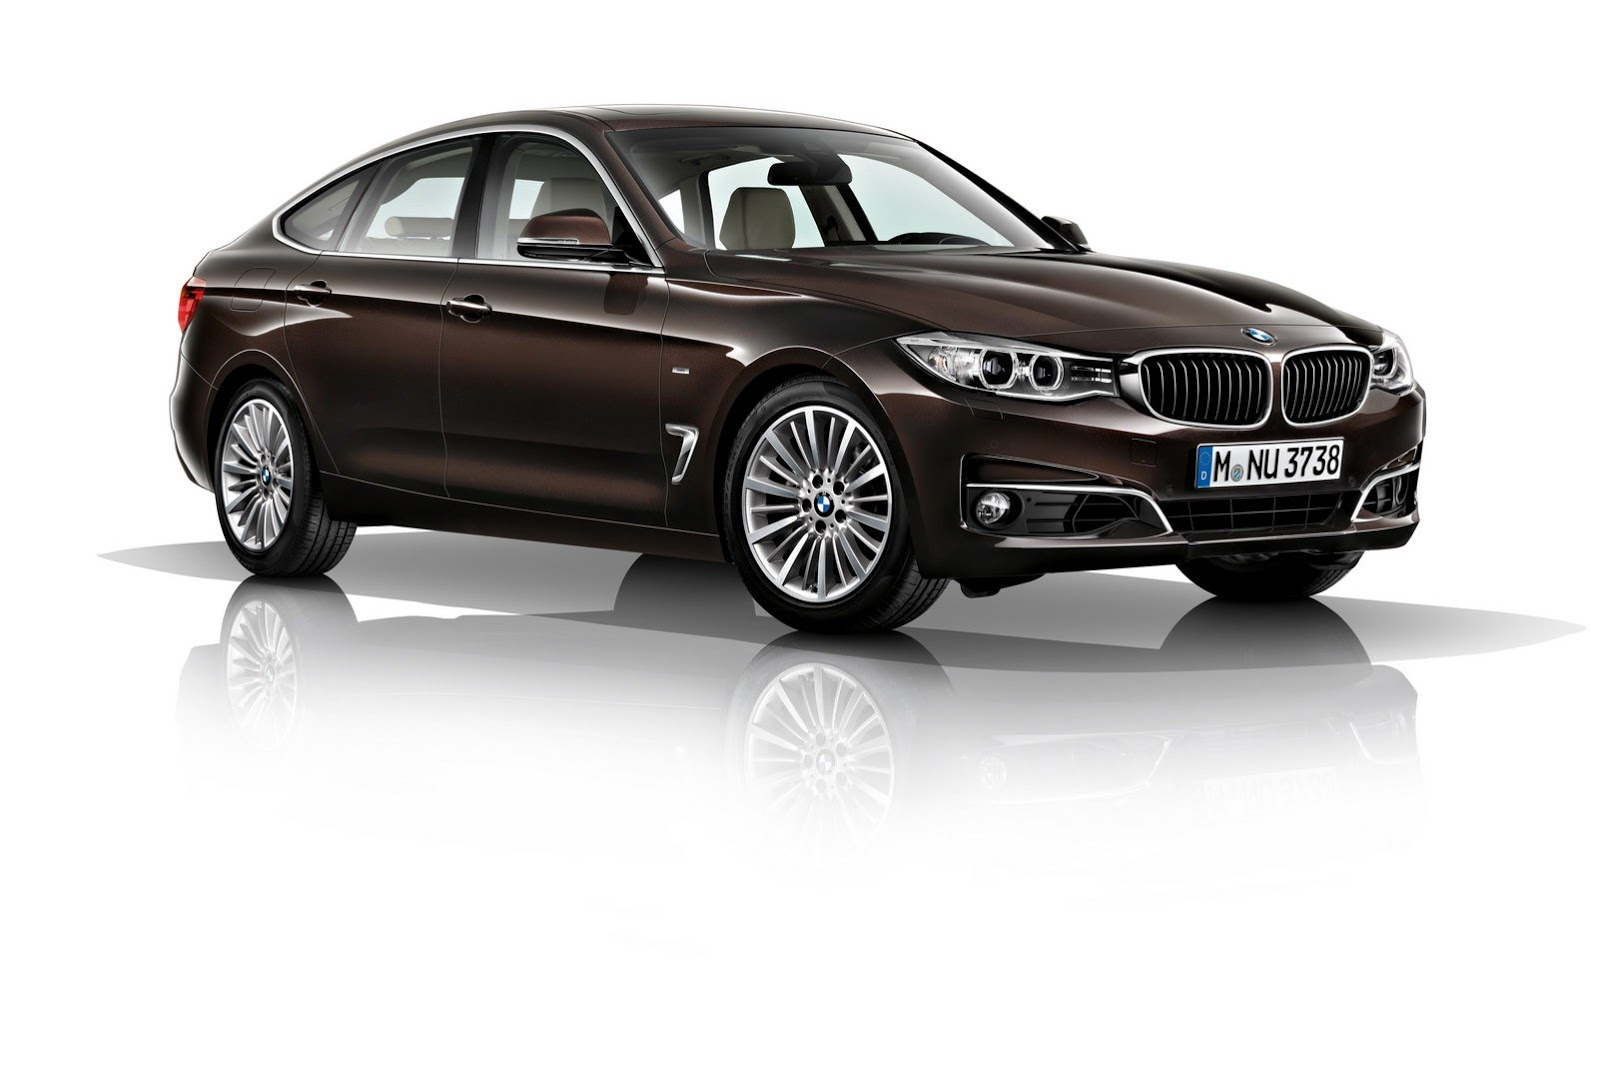 New Bmw 3 Series Gt Gallery Car Gallery Compact Luxury Saloons Autocar India